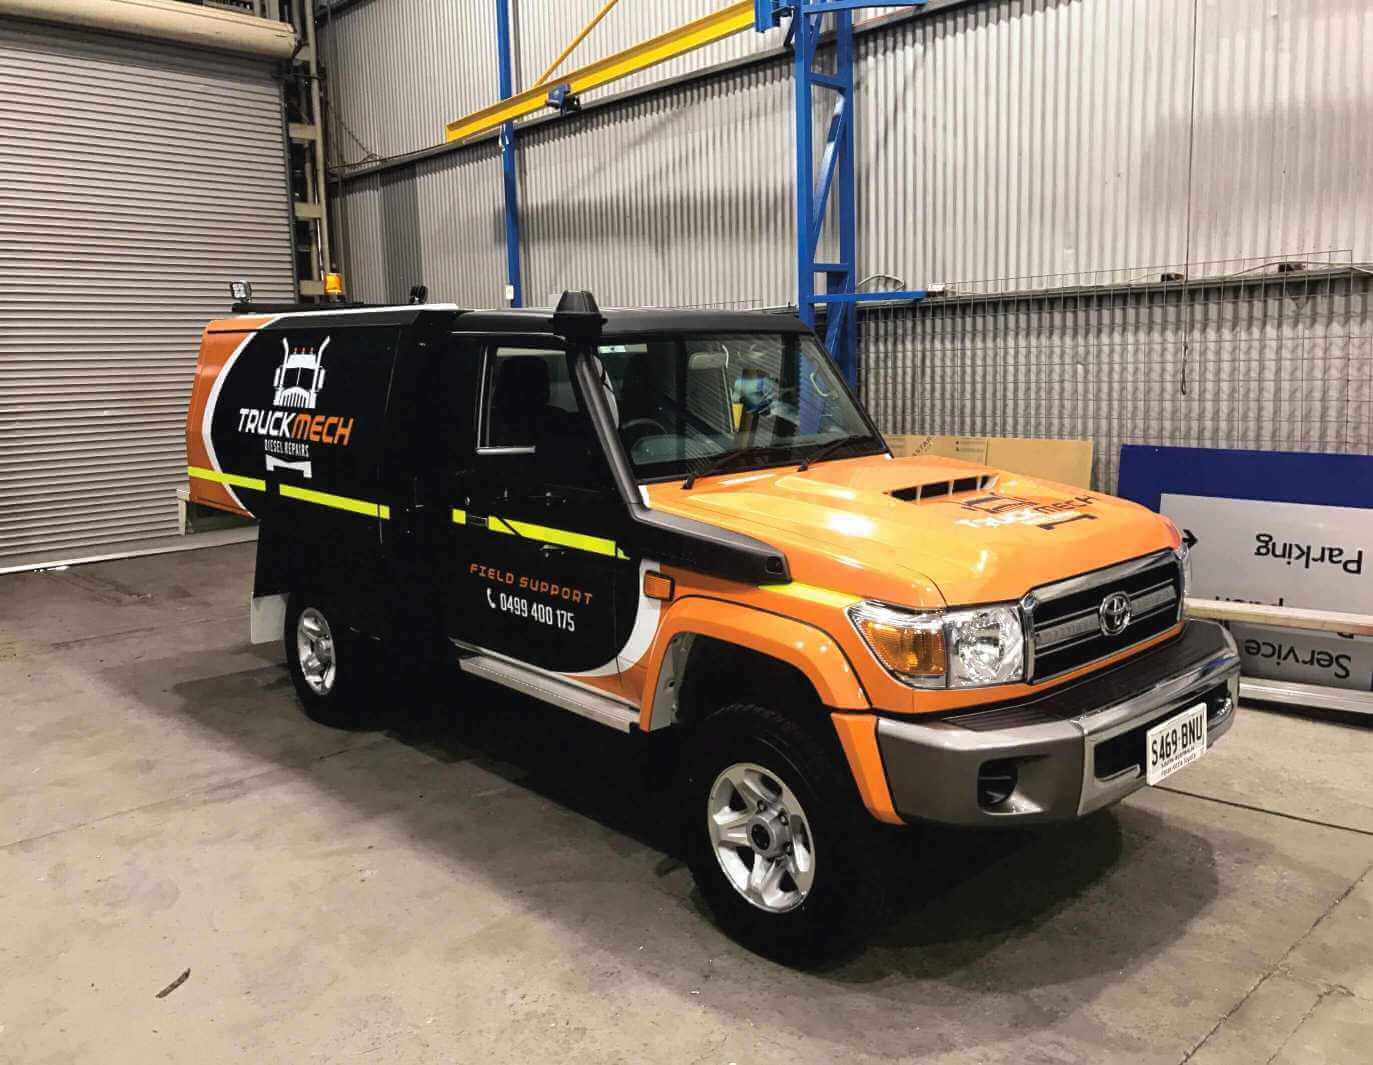 Vehicle decals and lettering - A field service support vehicle which has been spray painted in three different colours and has had vehicle decals and lettering applied